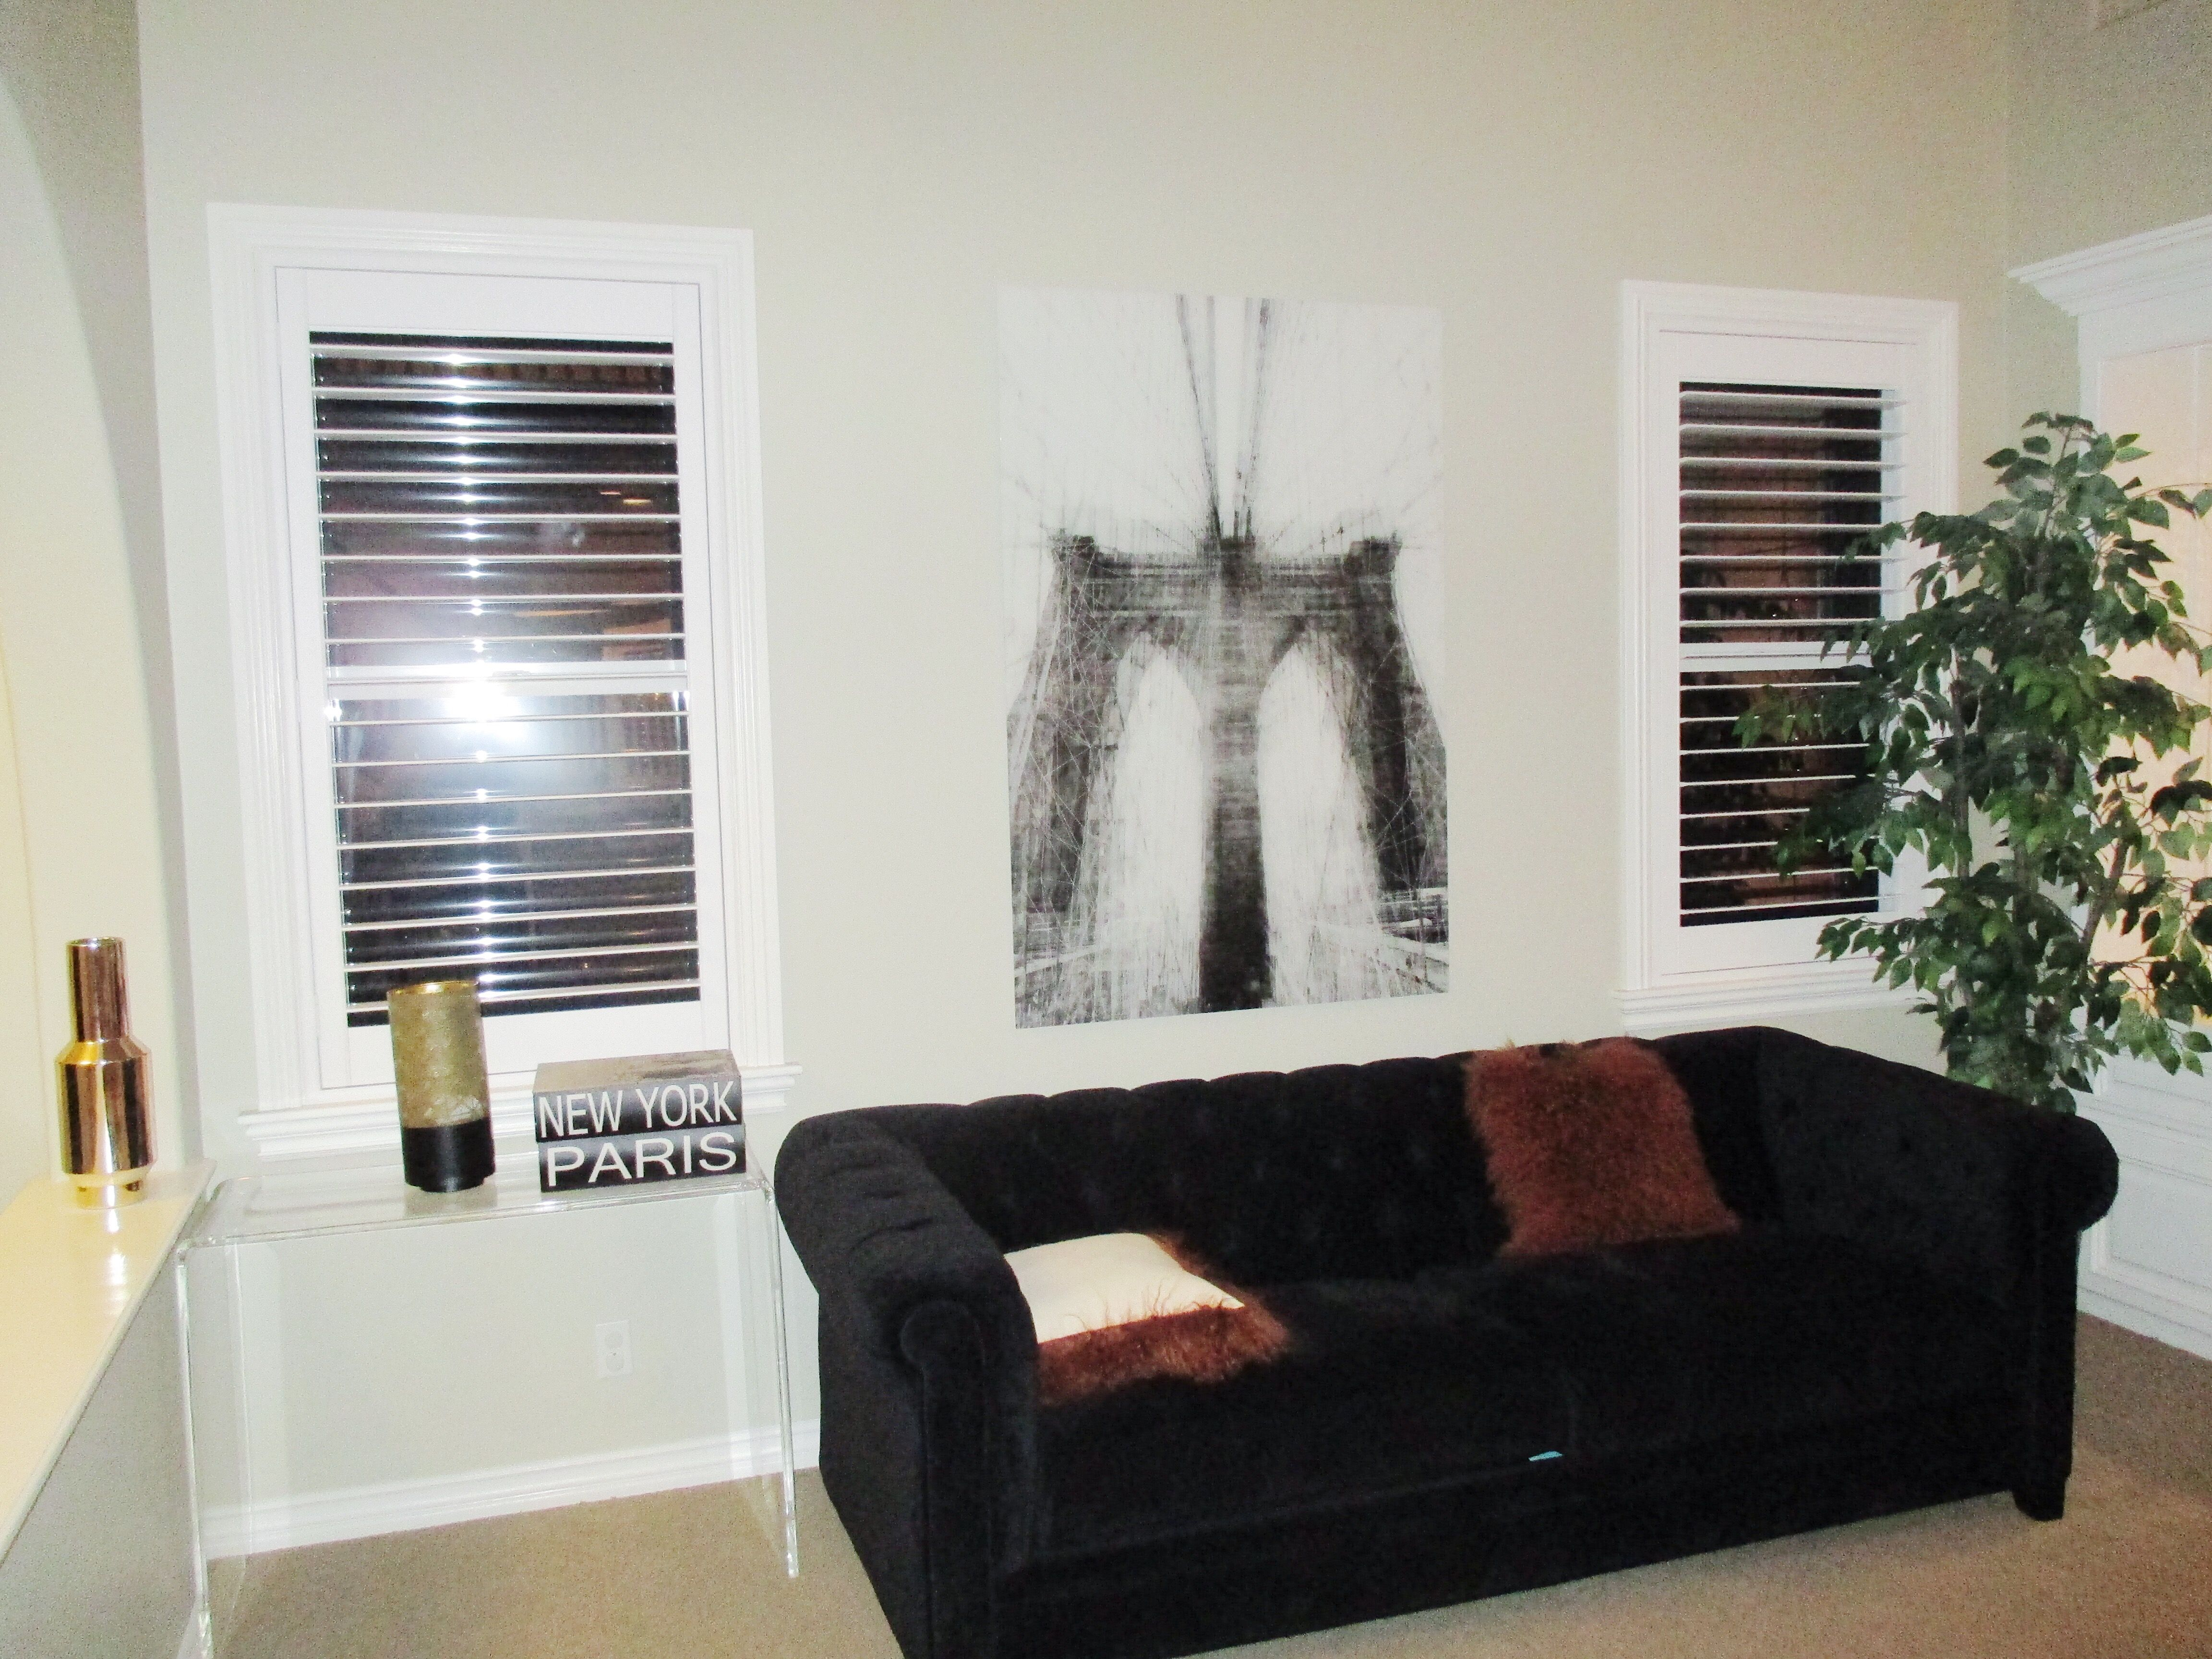 shutter composite internal awnings blinds plantation interior shutters inside products img